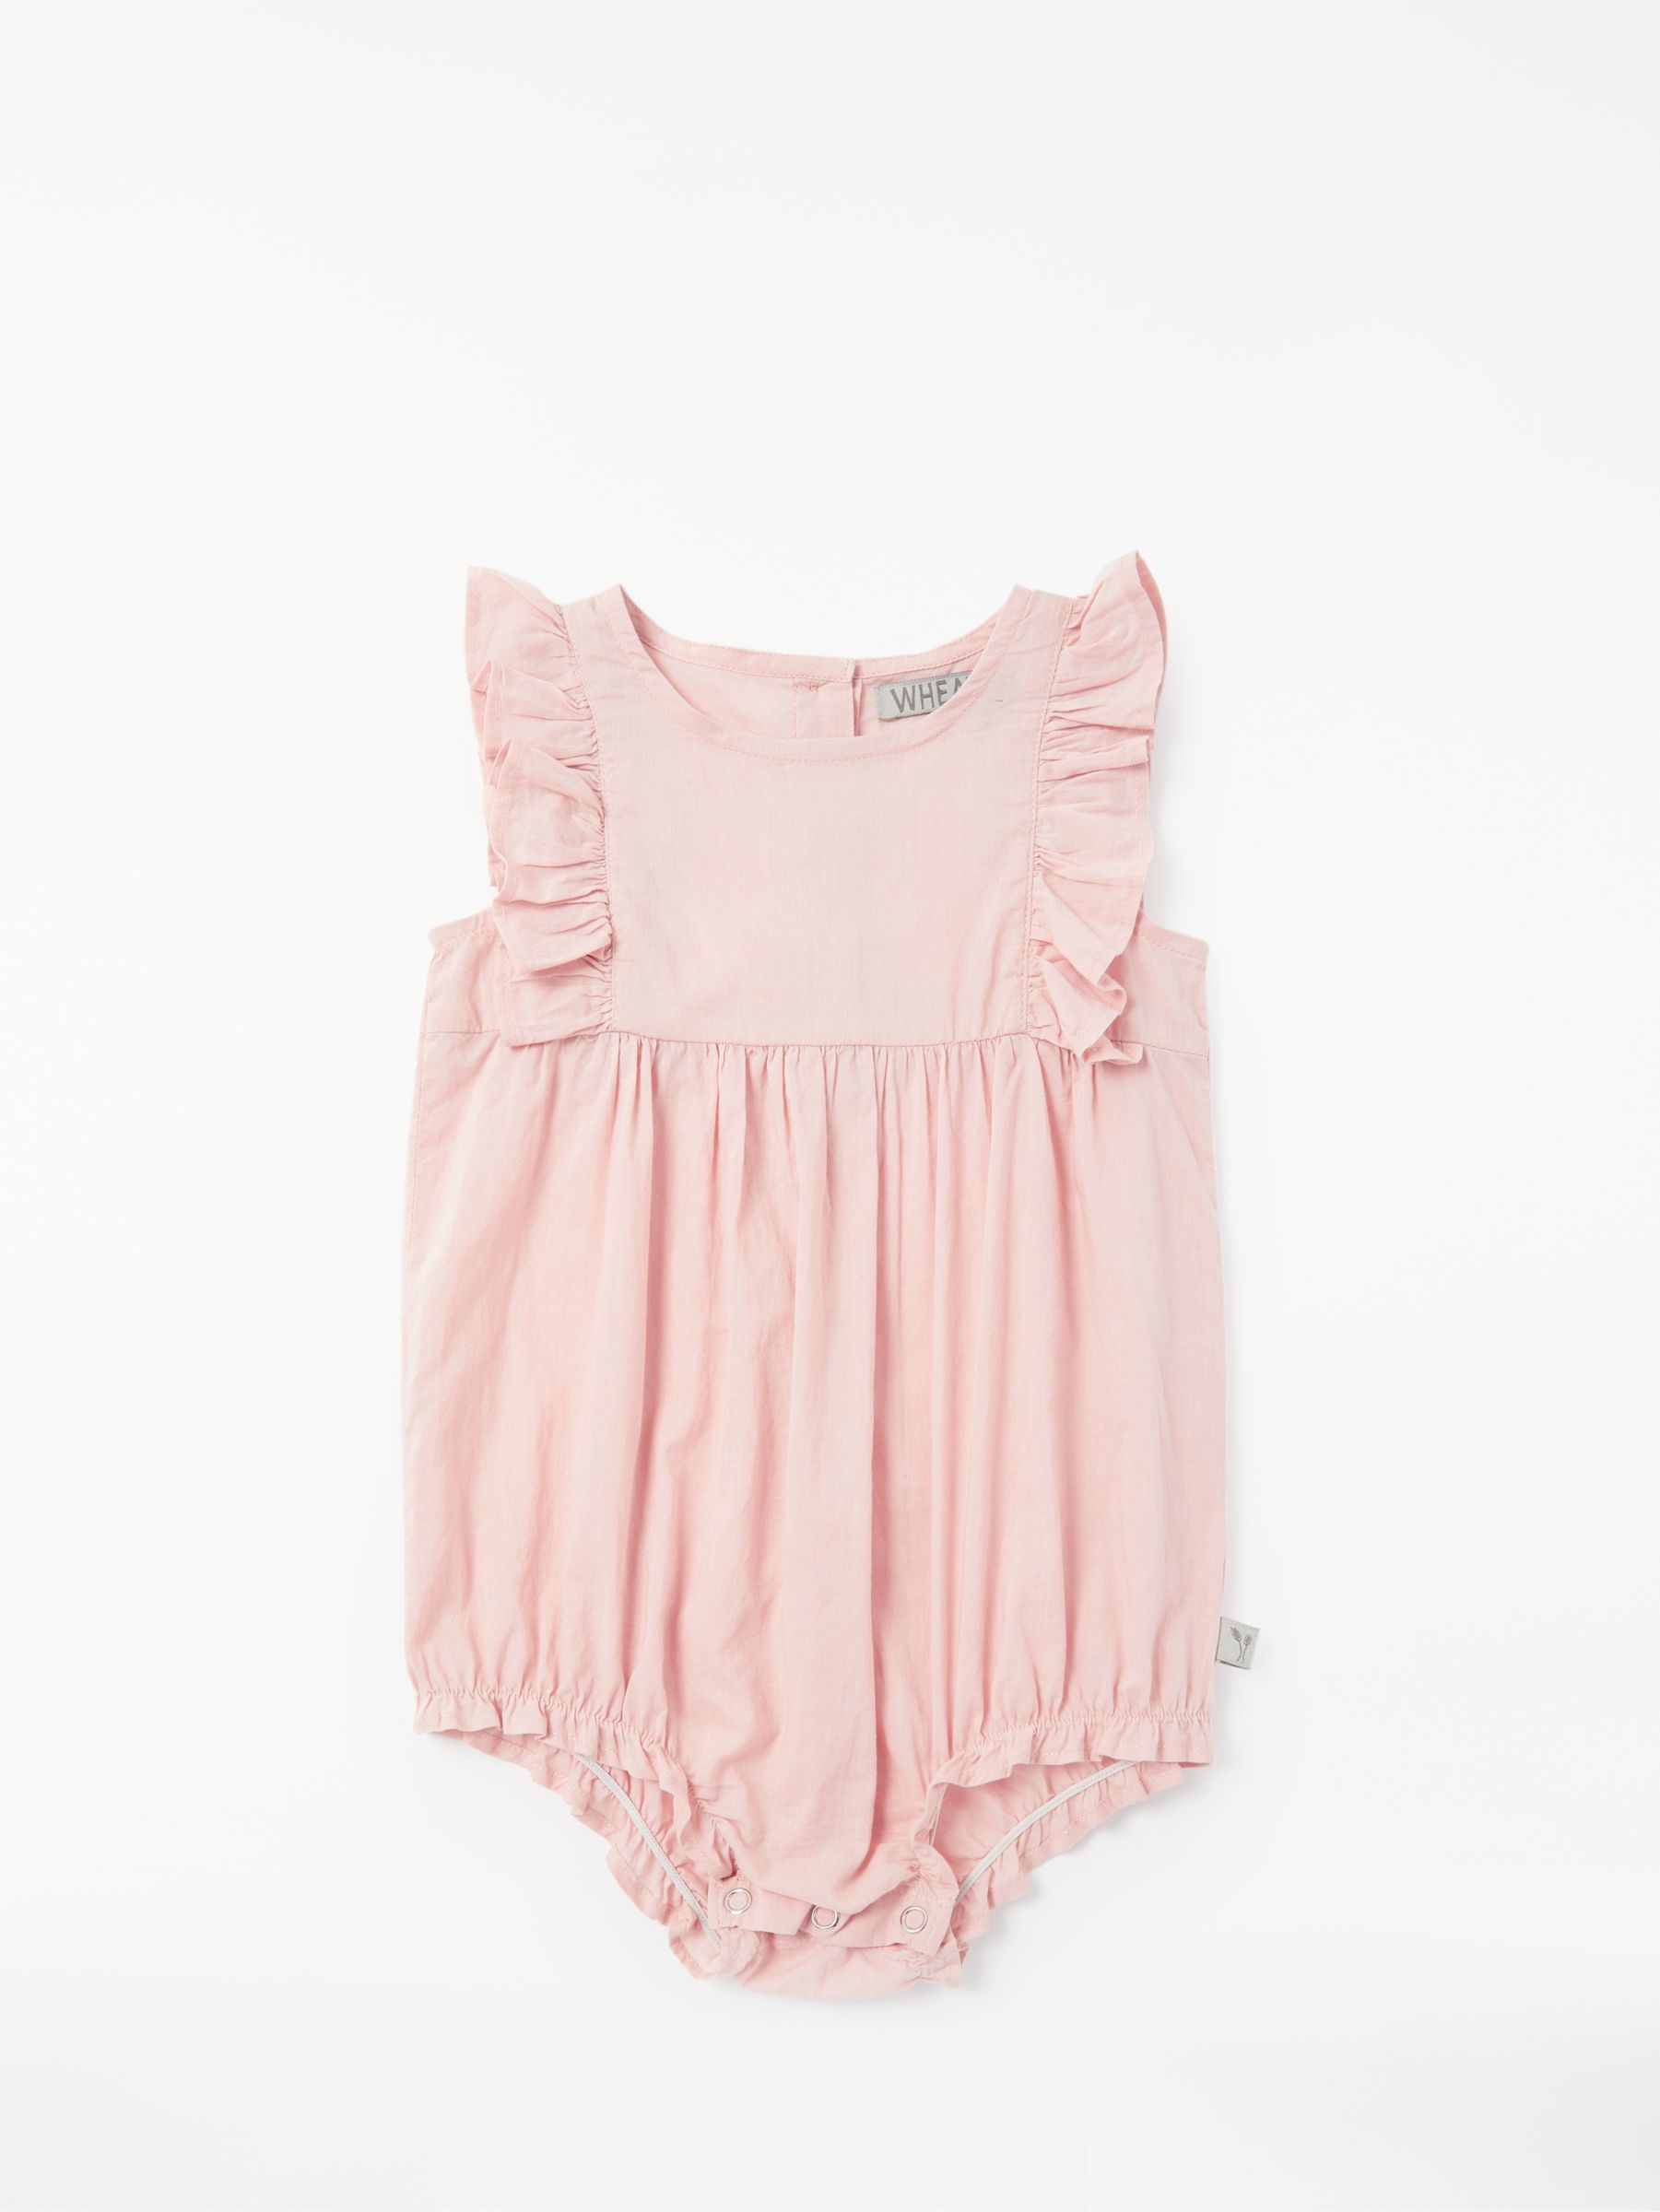 buywheat baby emmaline frill romper rose 1 month online at johnlewis com  [ 1440 x 1920 Pixel ]